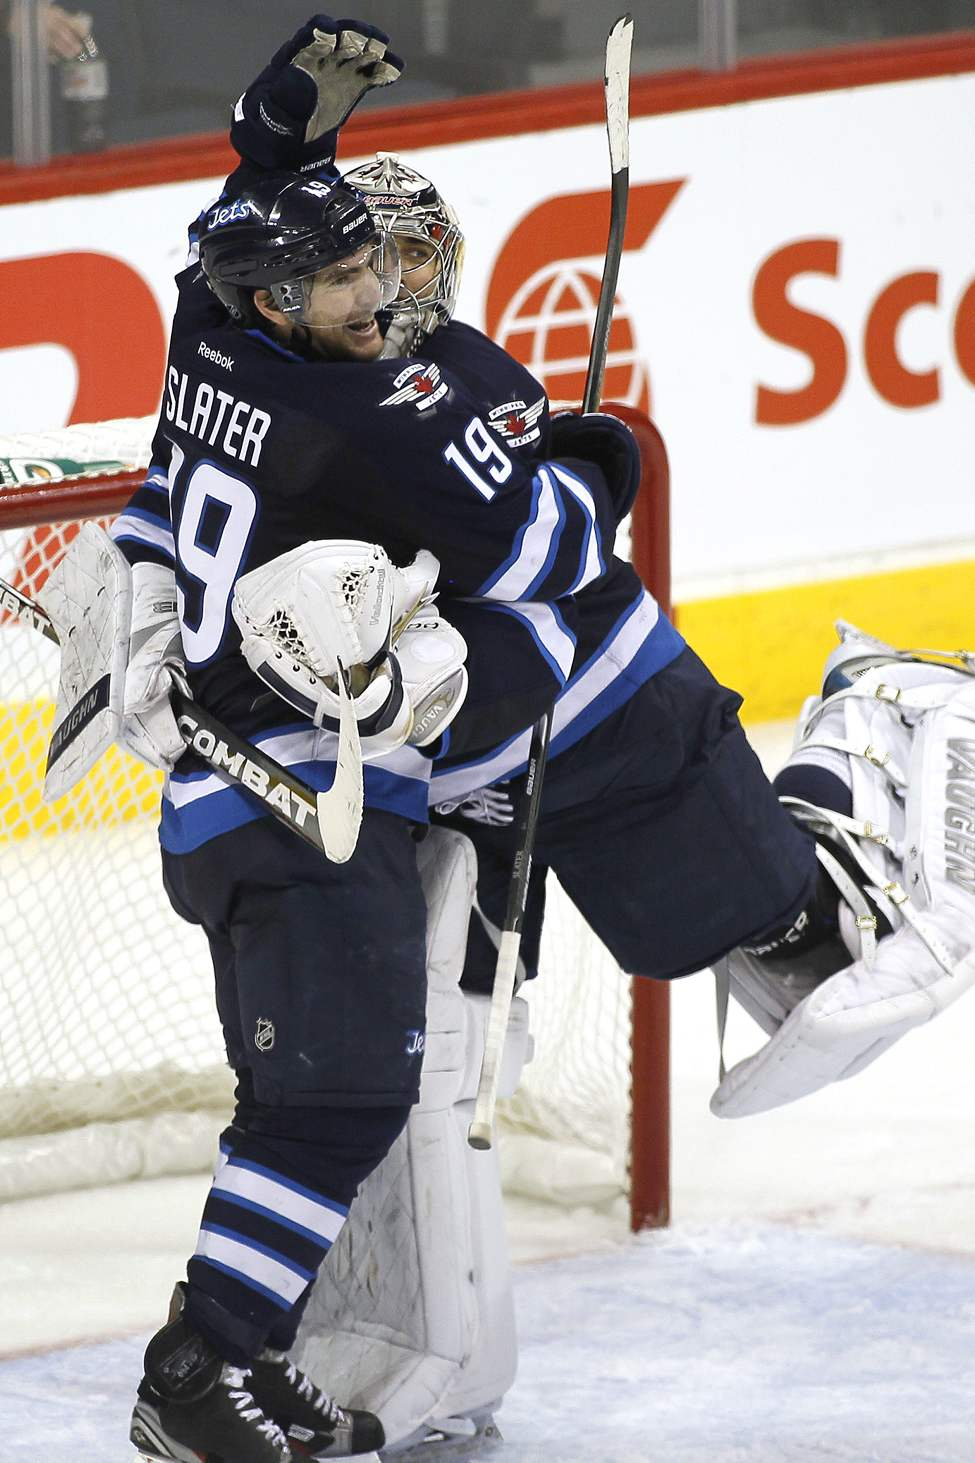 Winnipeg Jets' forward Jim Slater (19) and goaltender Ondrej Pavelec (31) celebrate a win over the Boston Bruins in NHL action in Winnipeg on December 6, 2011. (John Woods / WINNIPEG FREE PRESS)